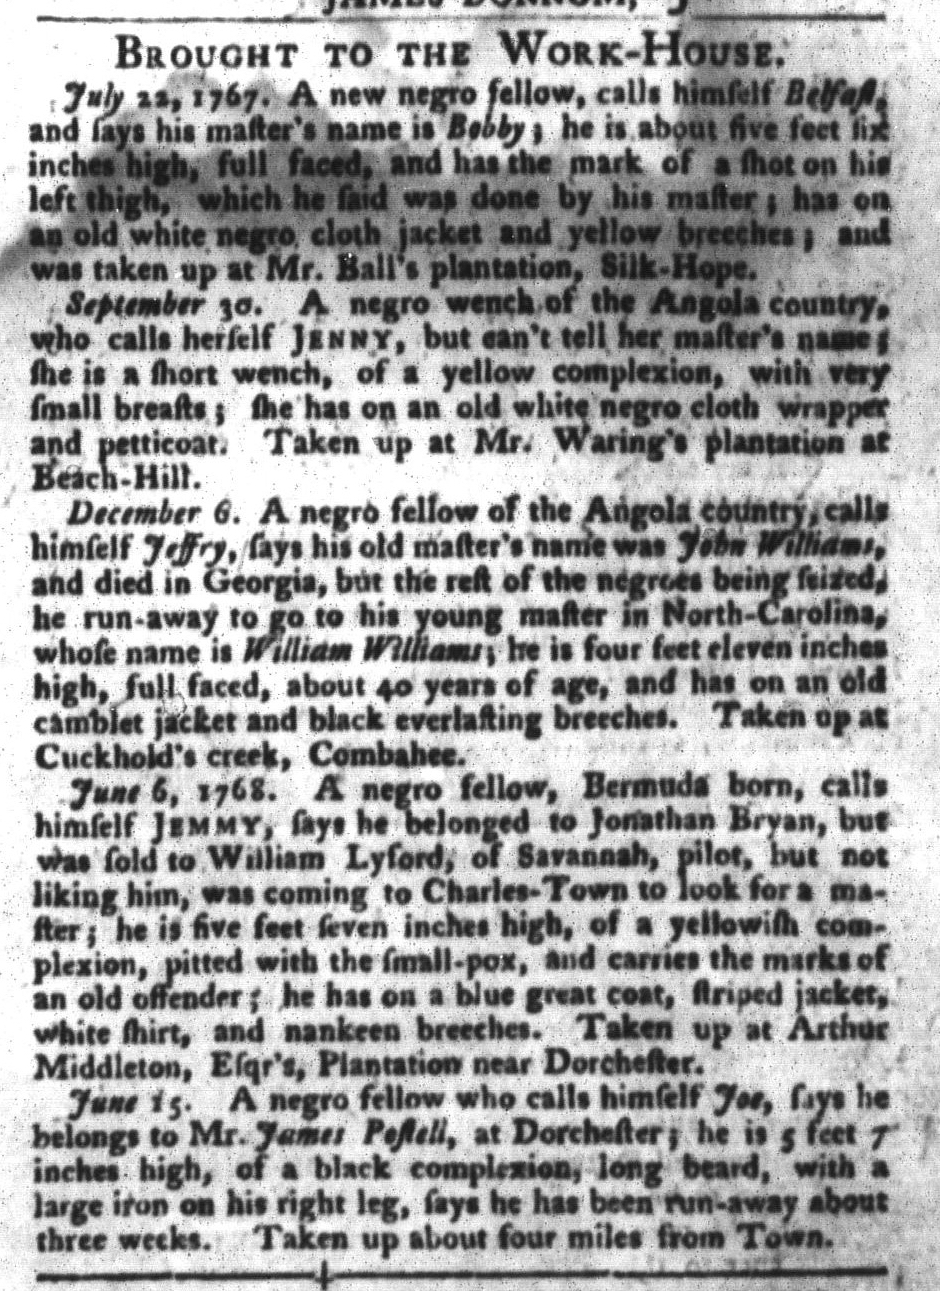 Jun 21 - South-Carolina Gazette and Country Journal Slavery 9